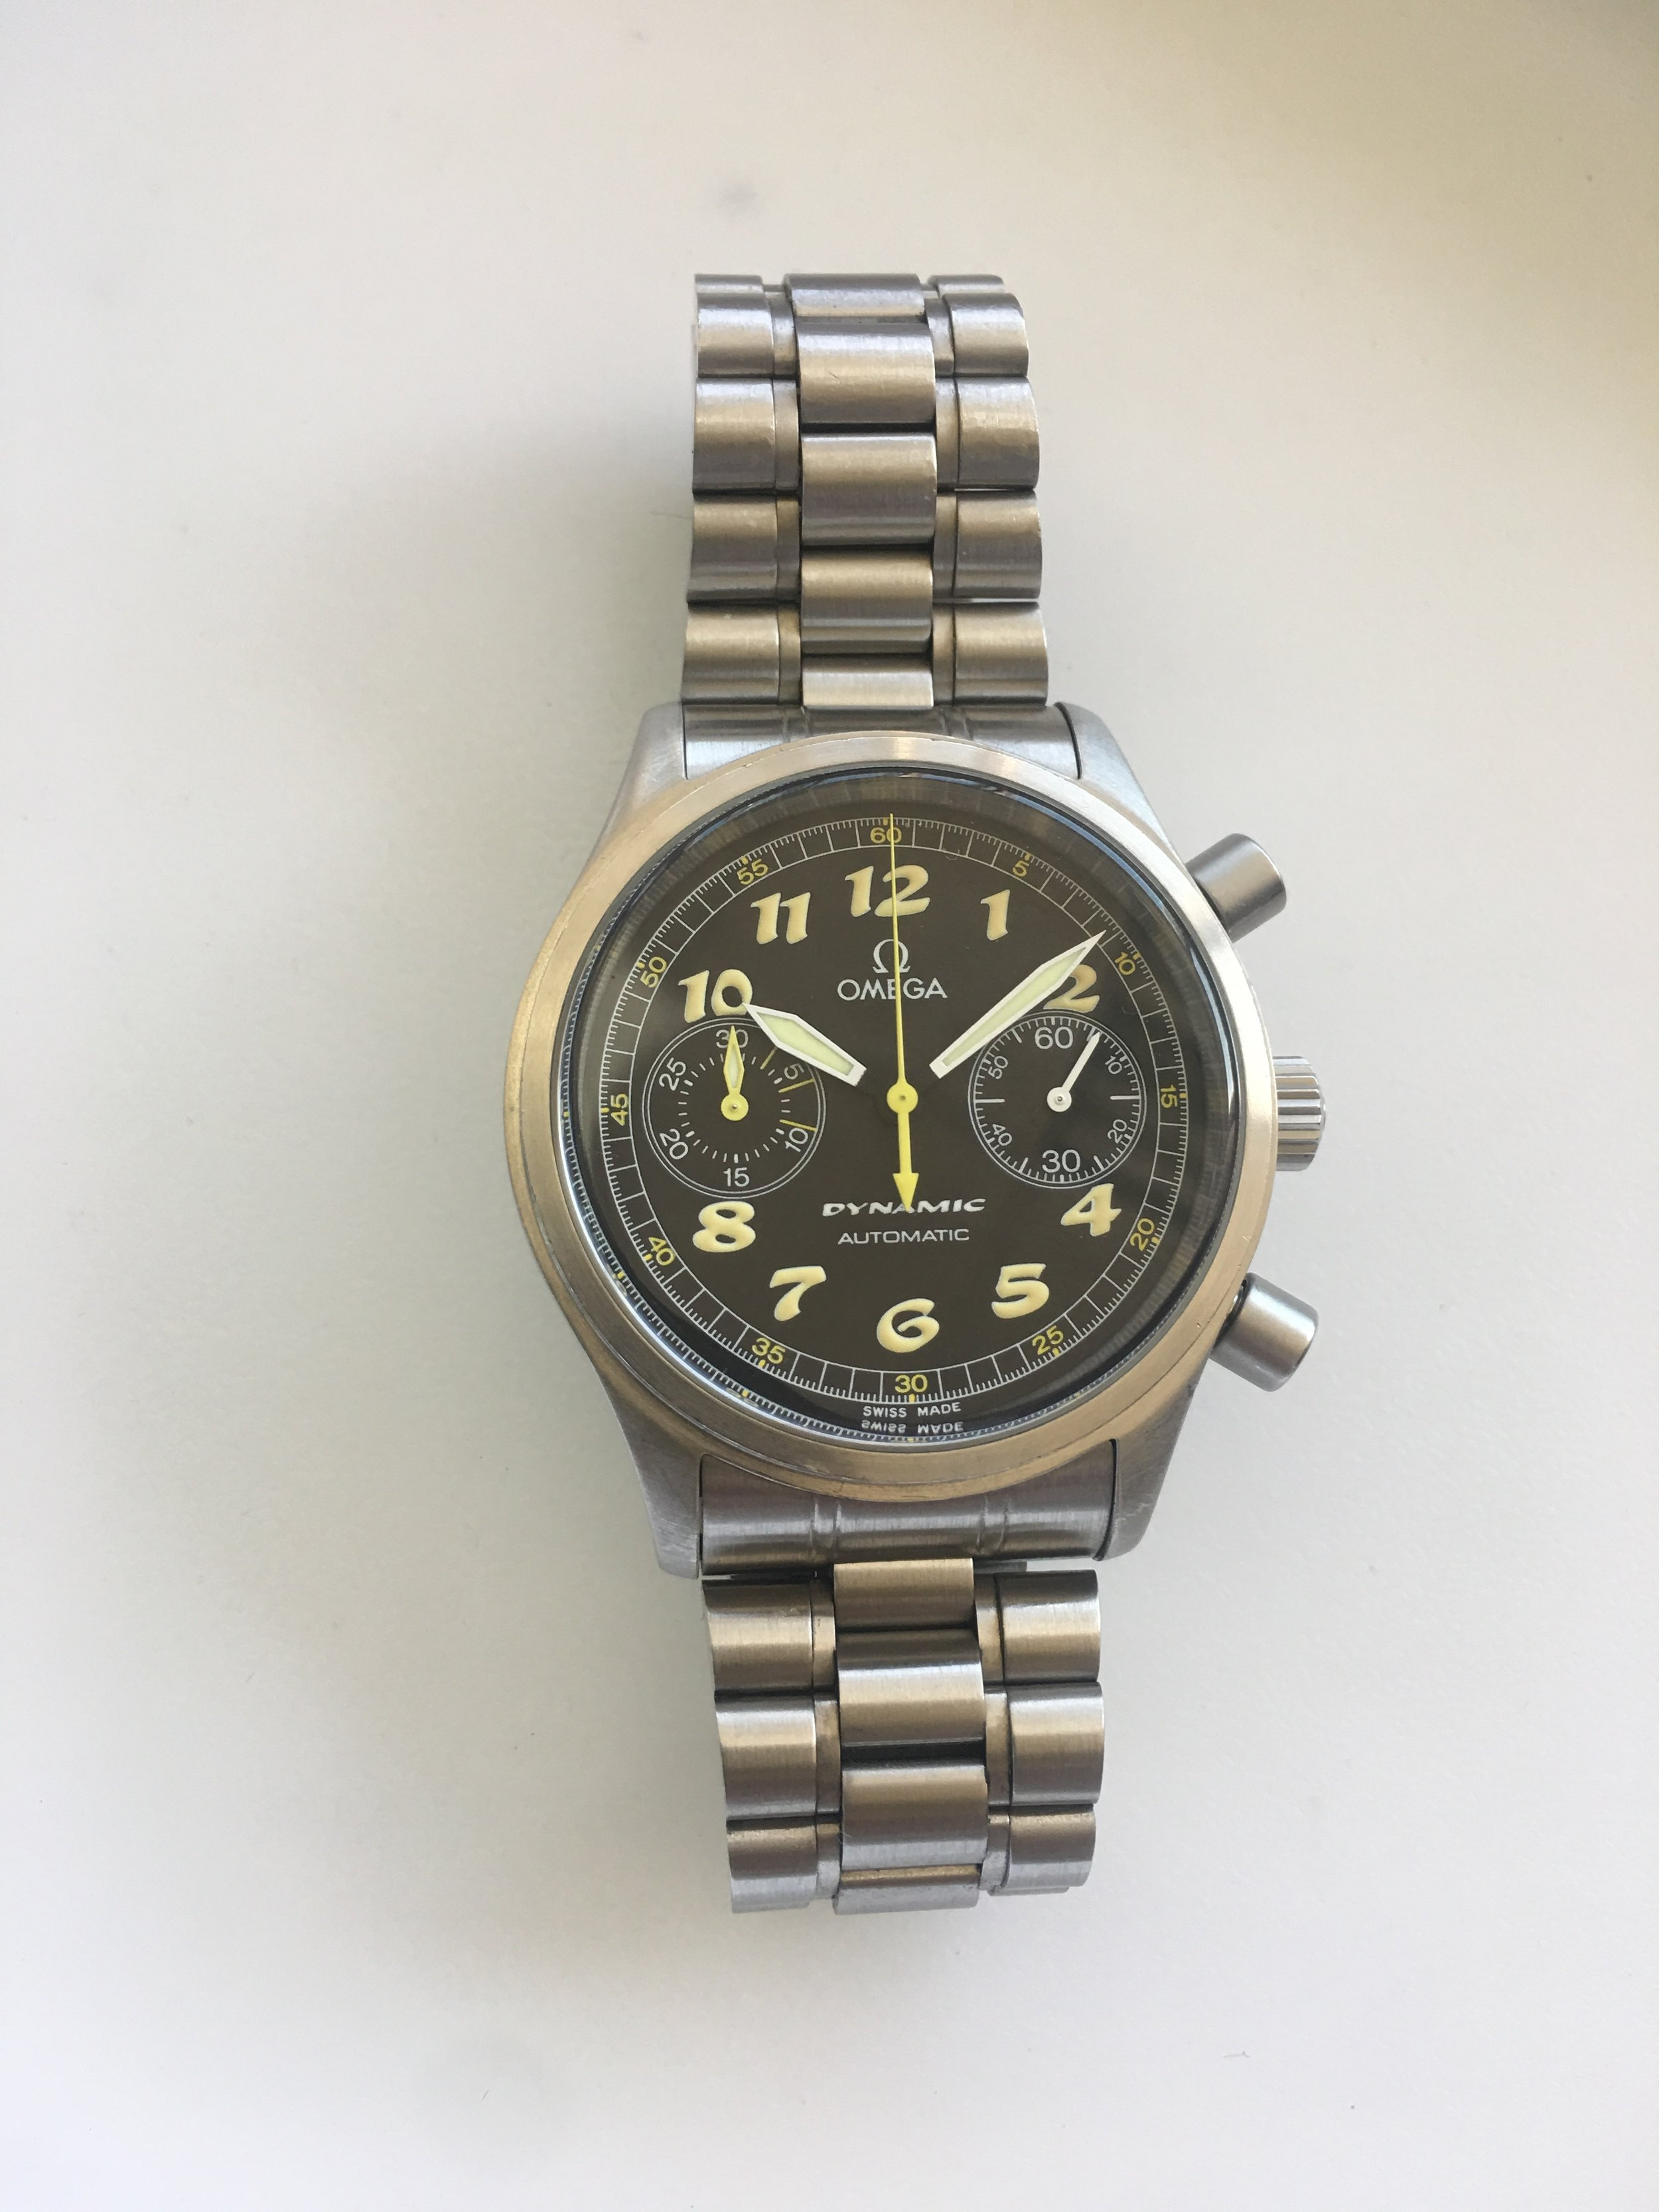 omega dynamic automatic. Tampa jewelry store watch repair